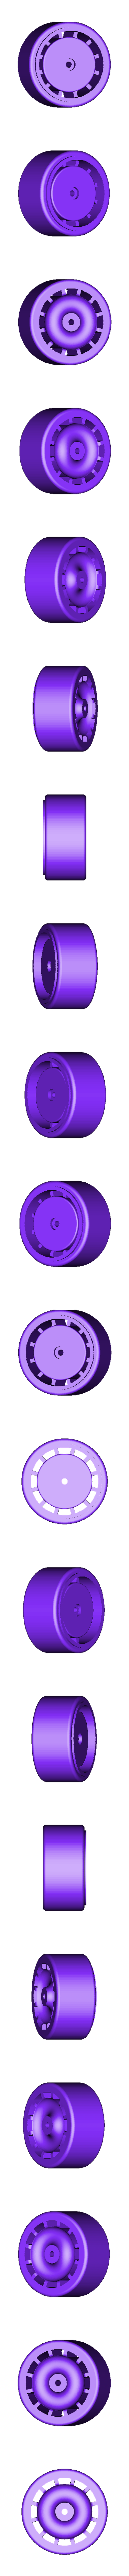 Wheel_05XL.stl Download free STL file Wheels for 1:64 Hotwheels and Diecast - Extra Large • 3D printable design, goodsons_hobbies